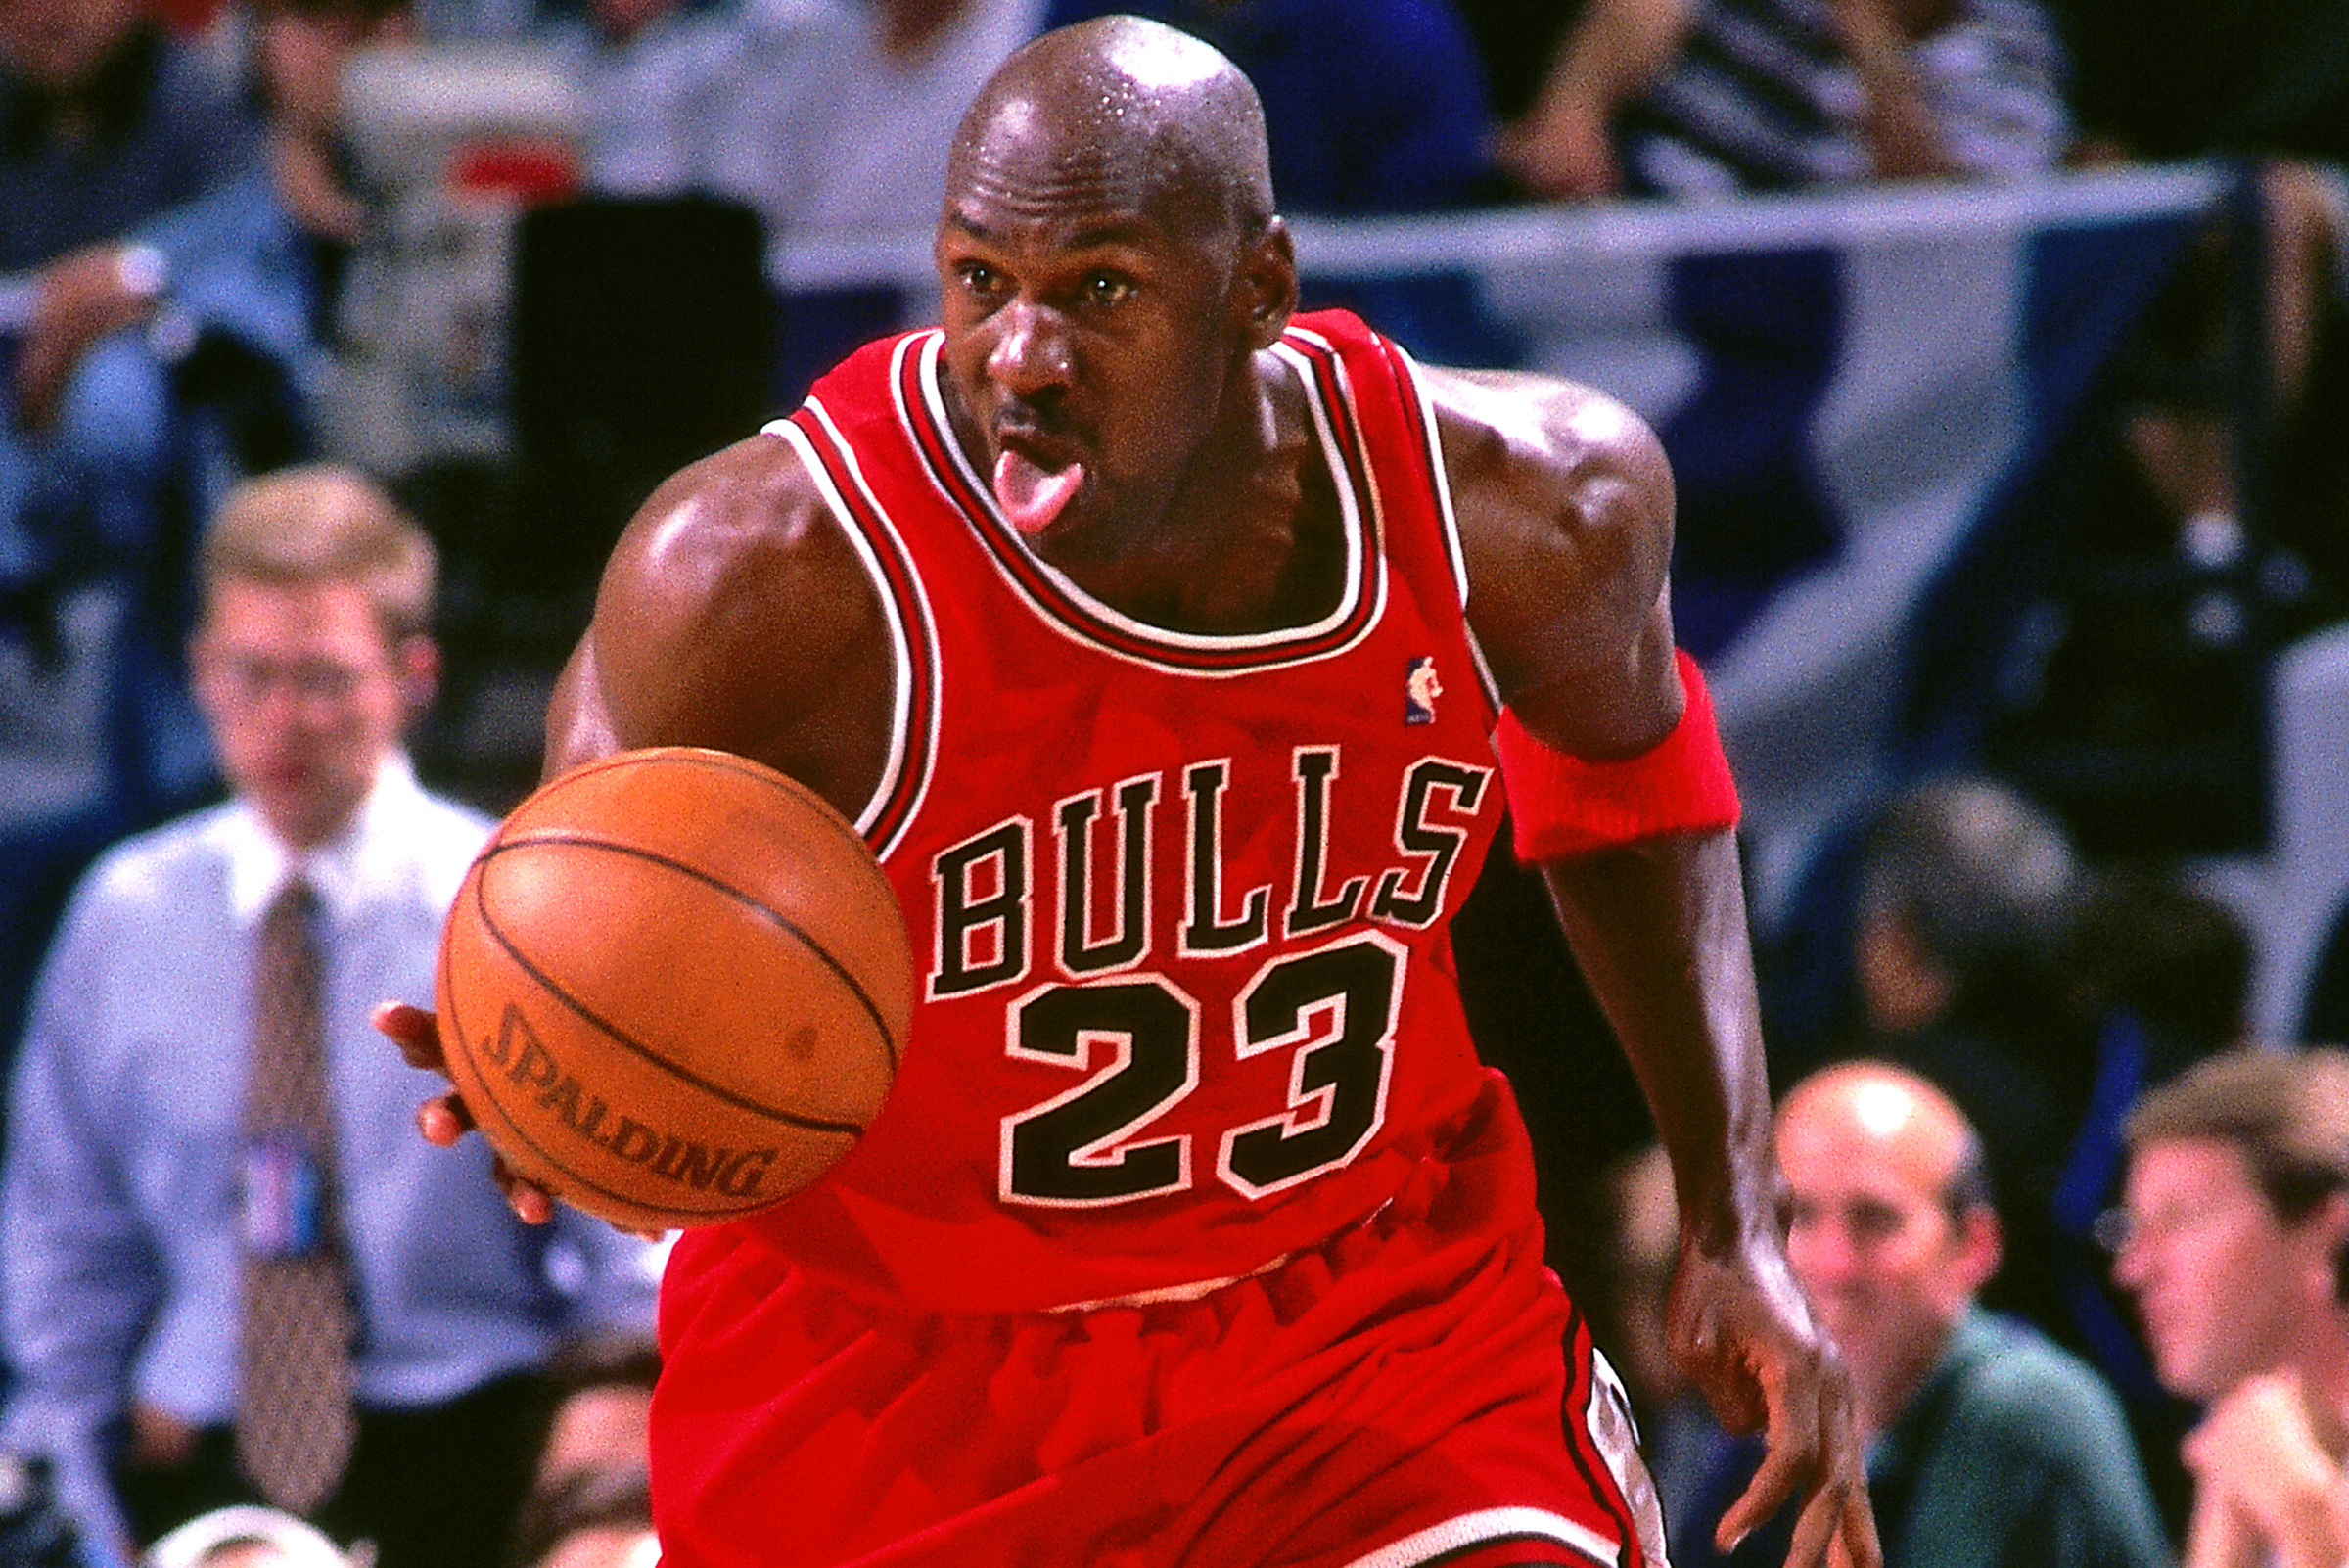 actualizar perder toma una foto  Michael Jordan Preferred Adidas over Nike, Converse out of College |  Bleacher Report | Latest News, Videos and Highlights